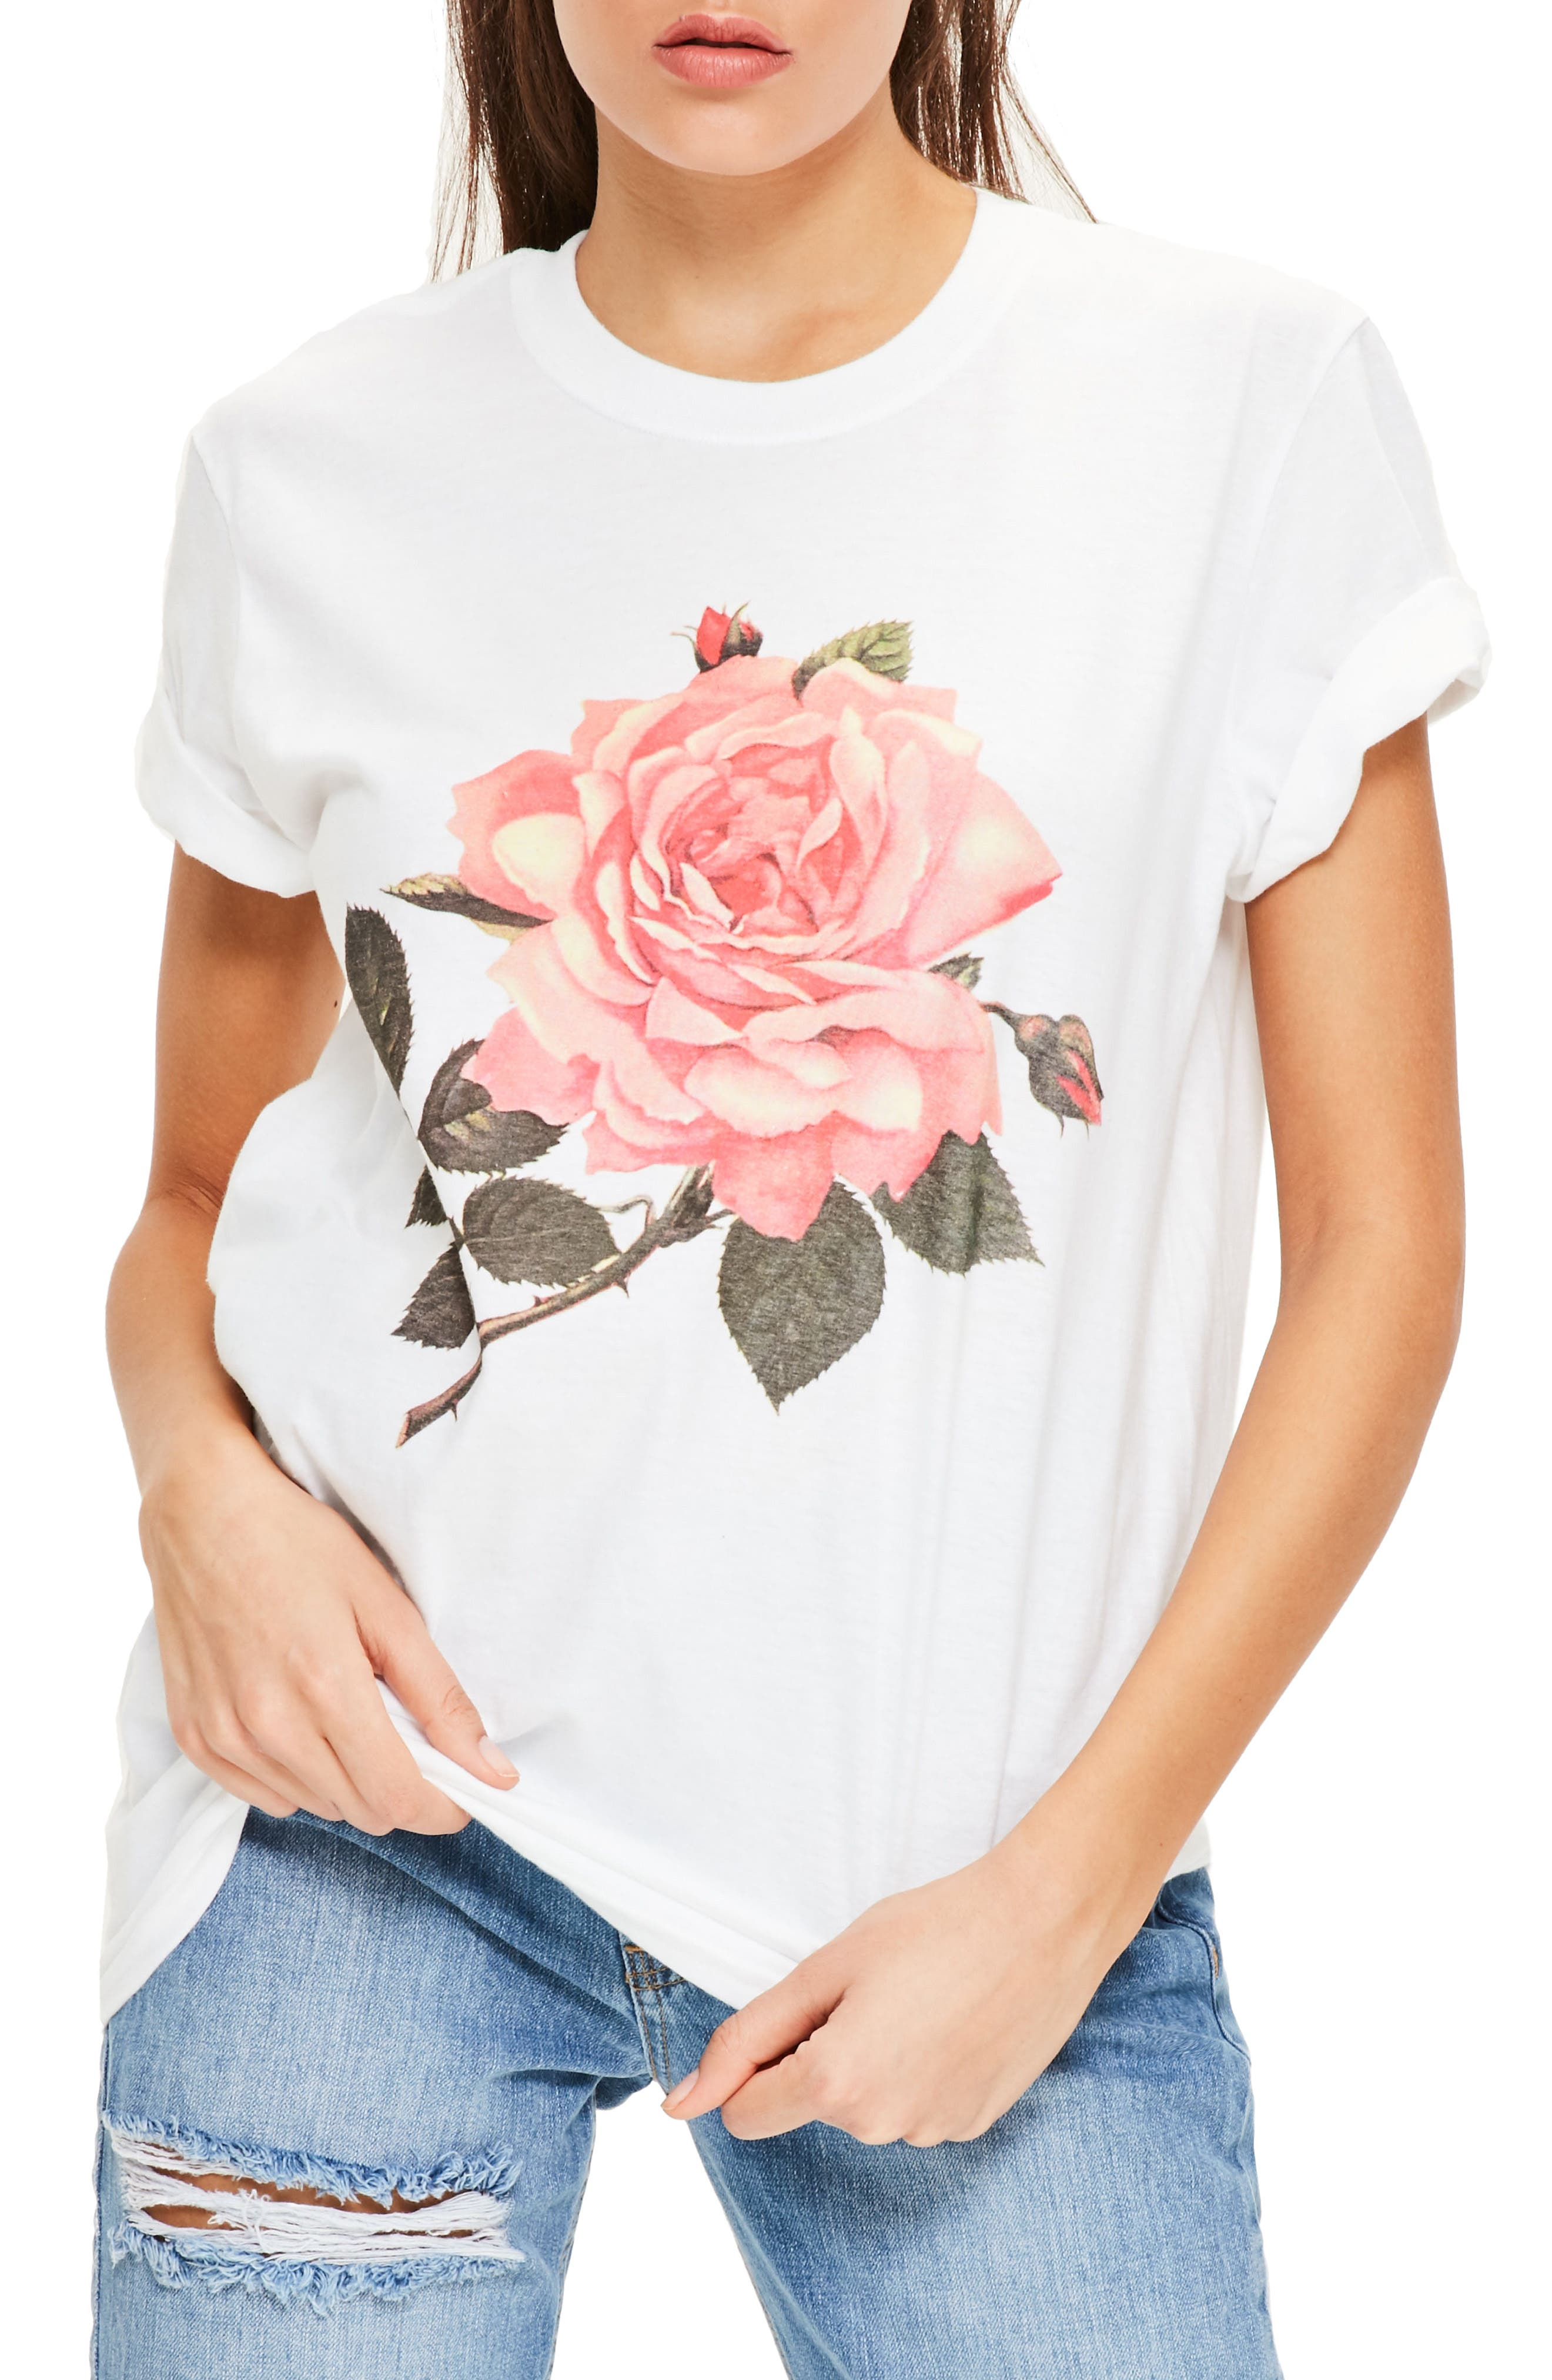 Alternate Image 1 Selected - Missguided Floral Print Graphic Tee